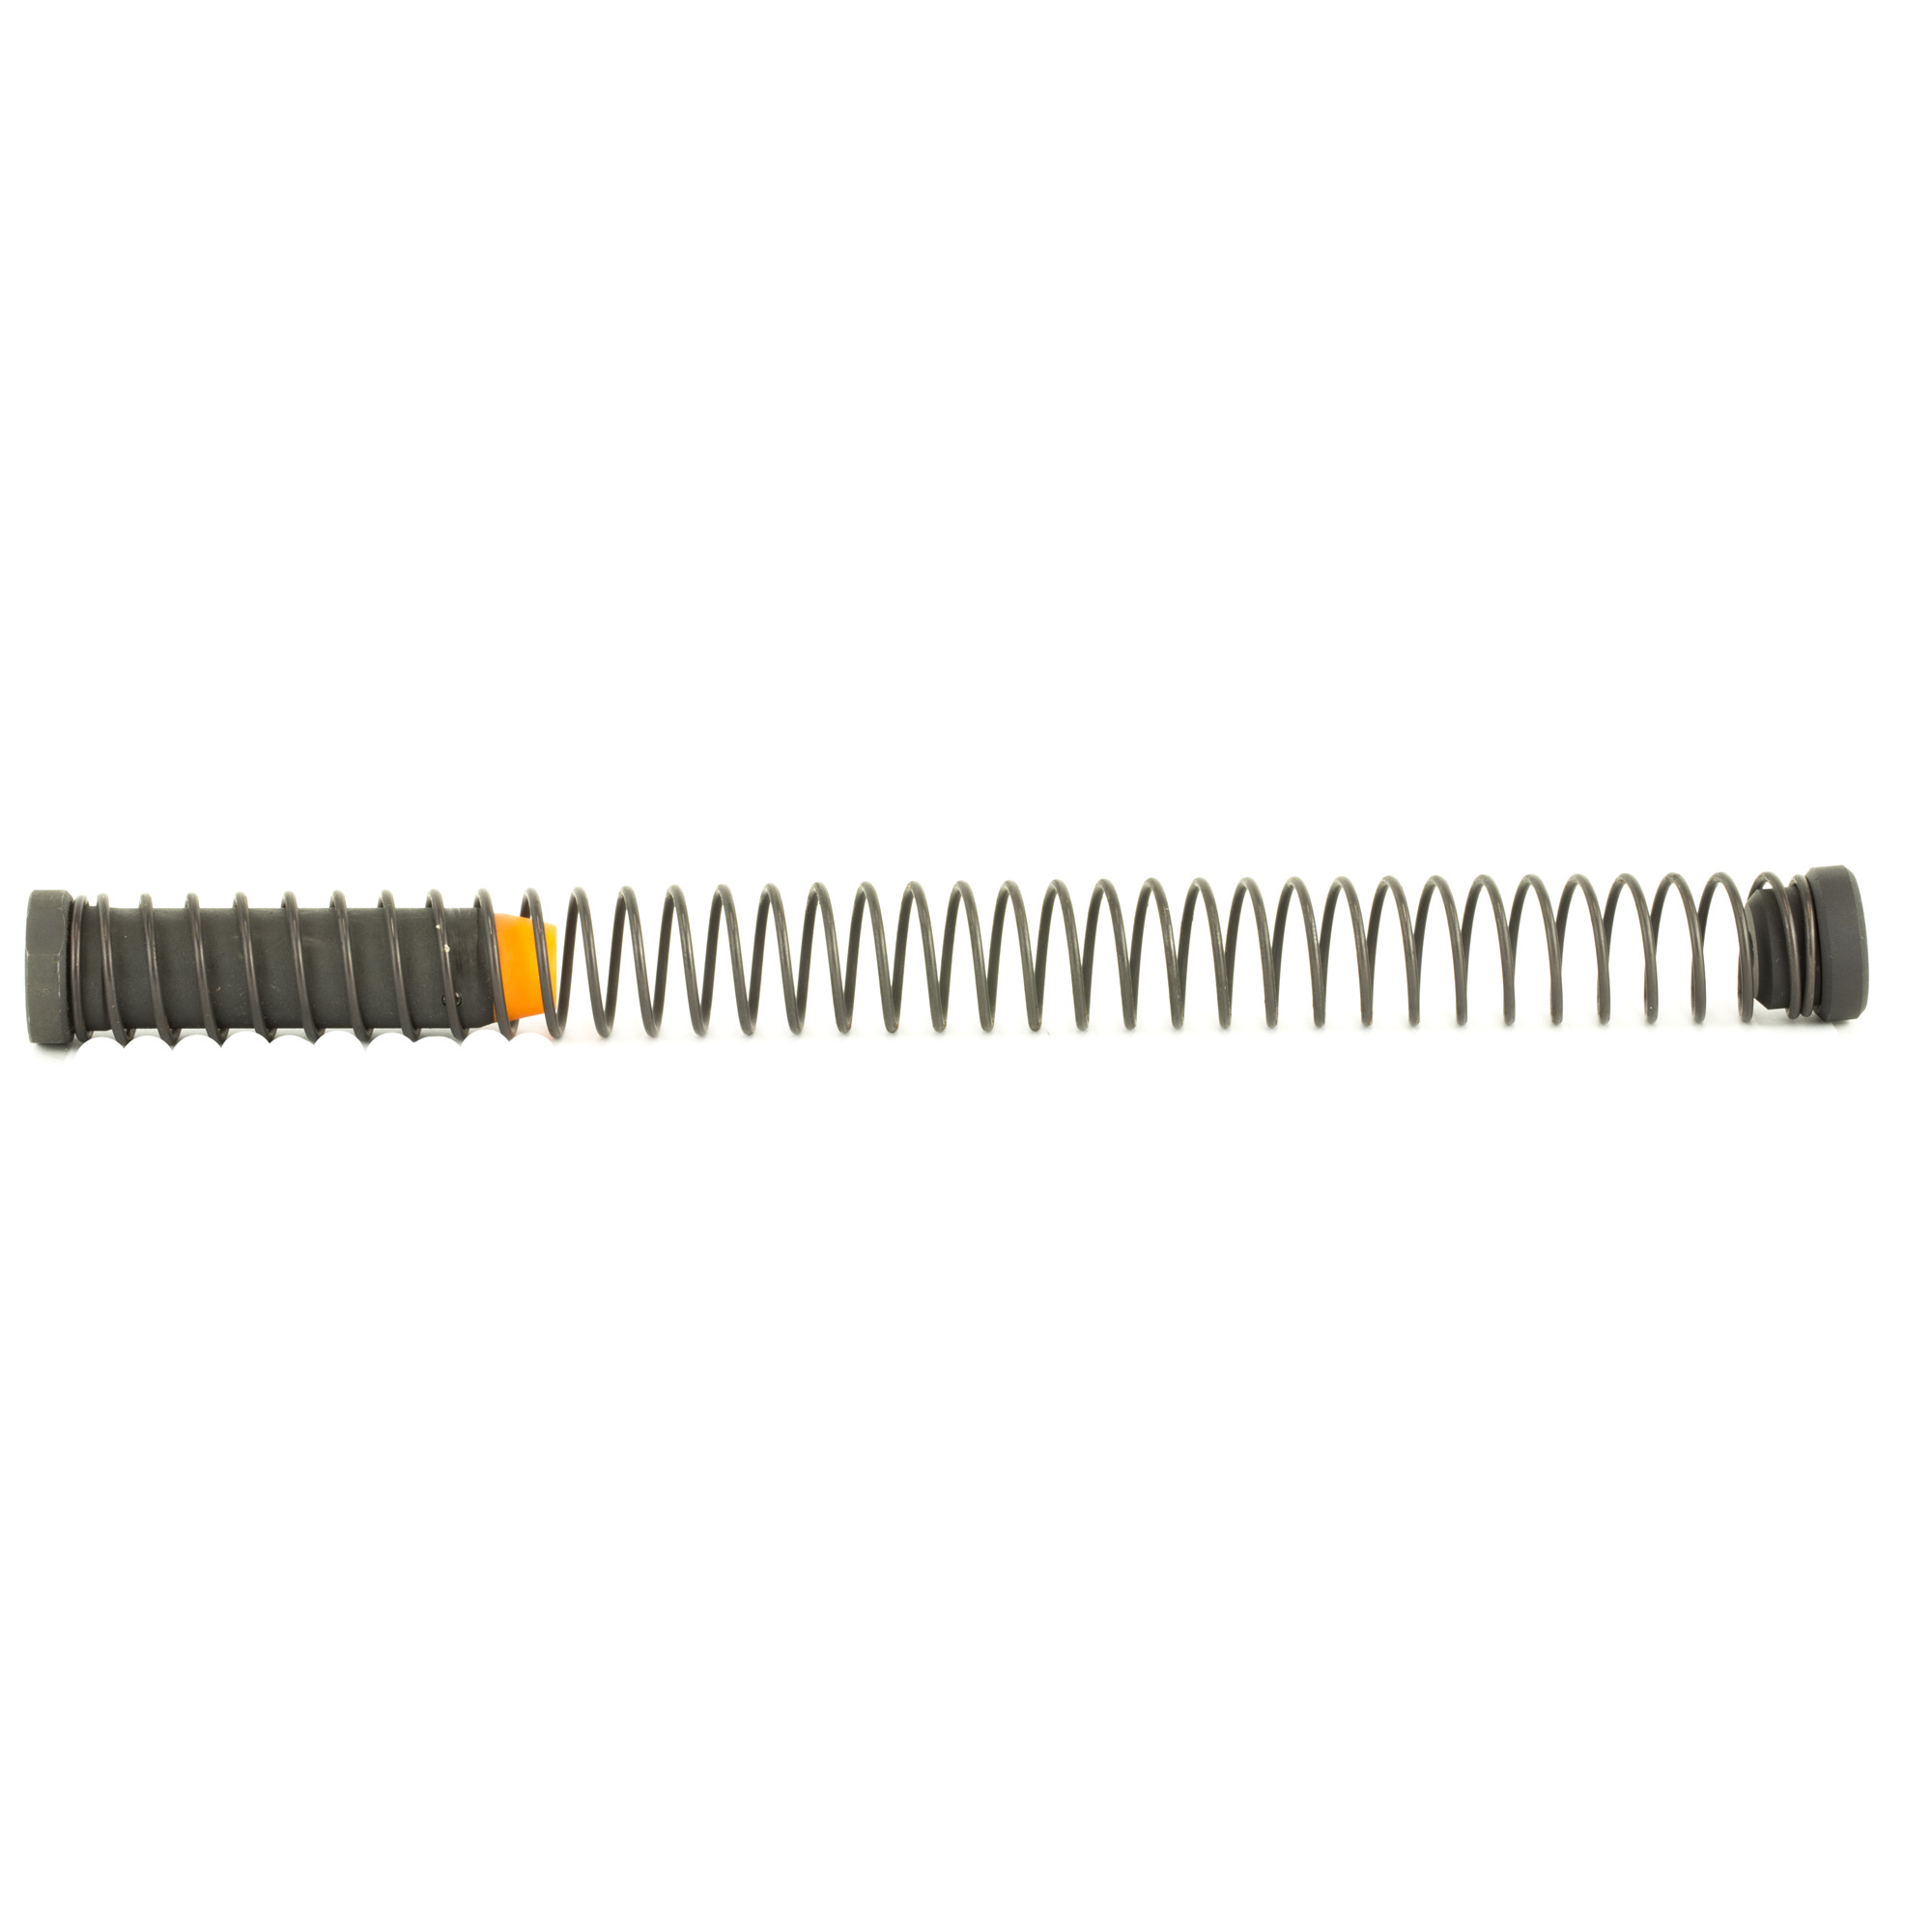 """The Angstadt Arms 9mm buffer assembly kit is compatible with both GLOCK(R) and Colt(R) style 9mm AR-15's. Weighing 5.4oz"""" this buffer is tough enough to withstand the abuse of blowback 9mm firearms and features a dedicated buffer spacer to limit overtravel of your 9mm bolt carrier. Includes 9mm buffer"""" spacer and carbine buffer spring."""